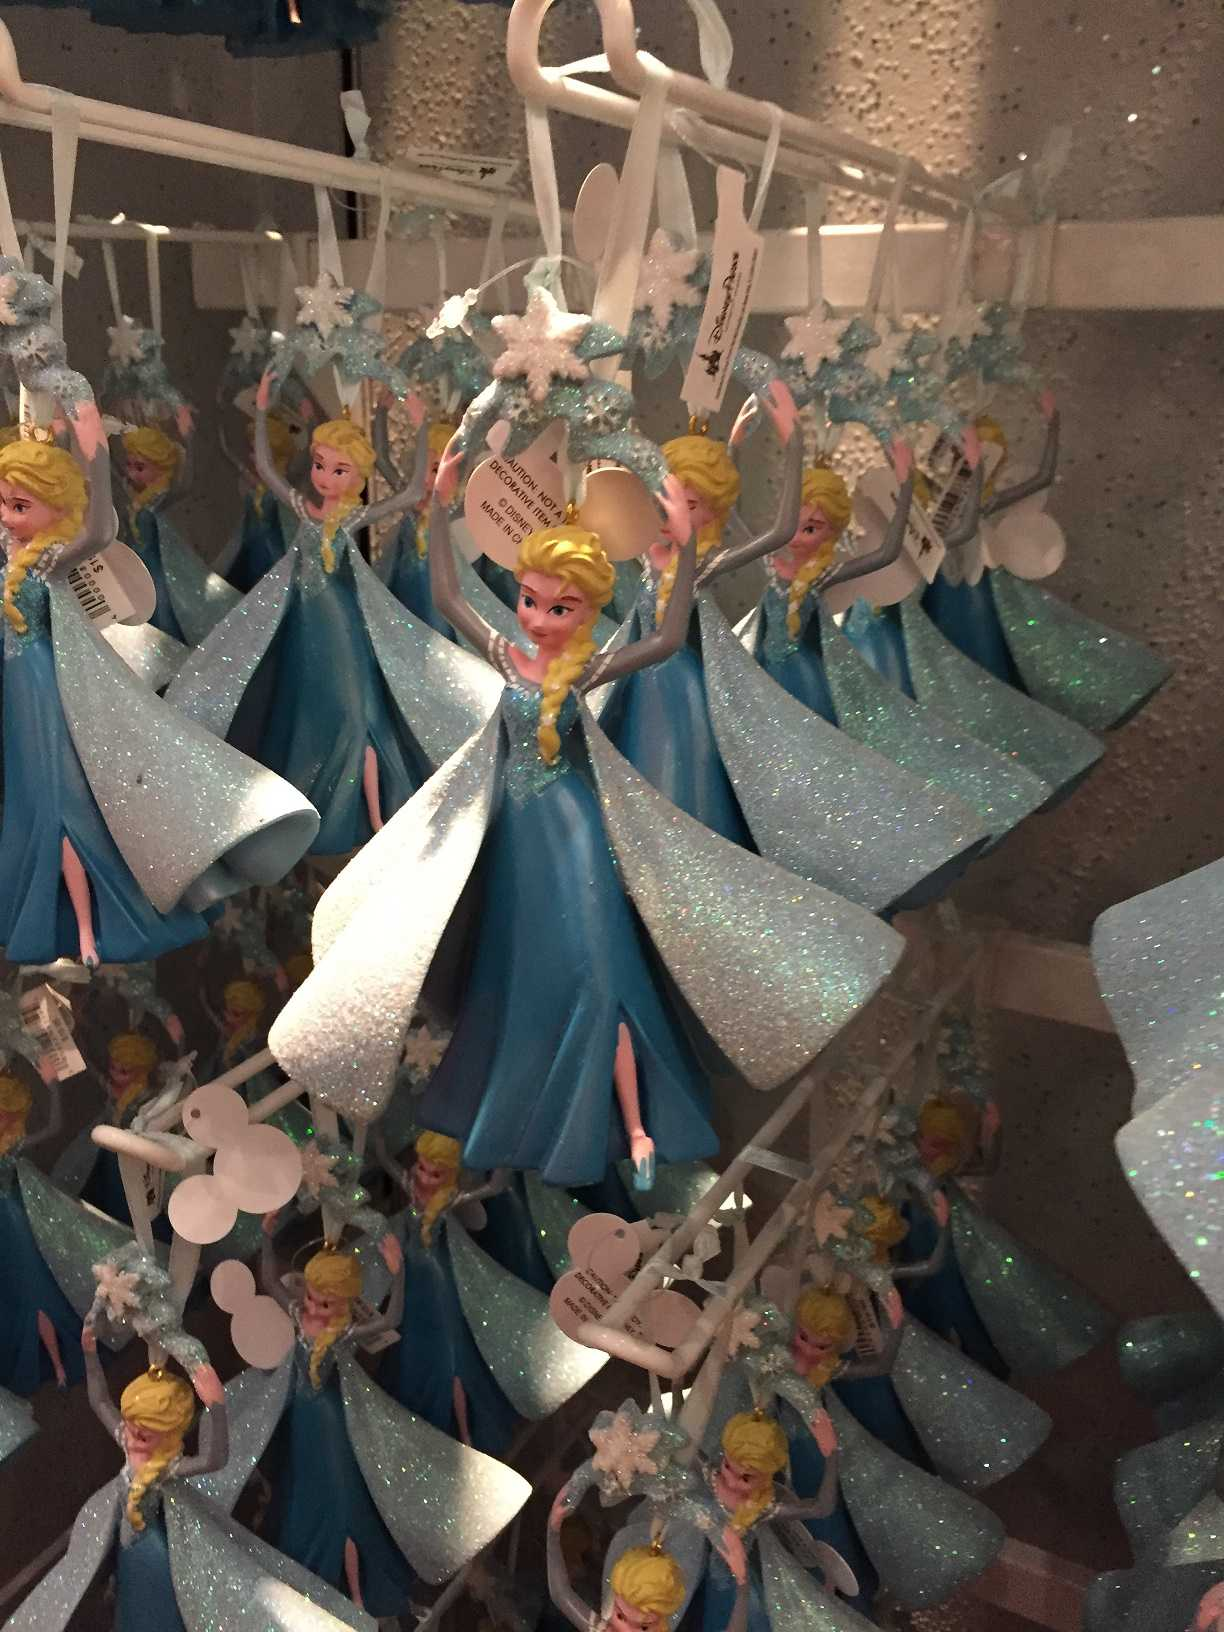 MAKING TODAY A PERFECT DAY: Christmas is almost here, so buy a mandatory Frozen ornament at the Christmas shop.